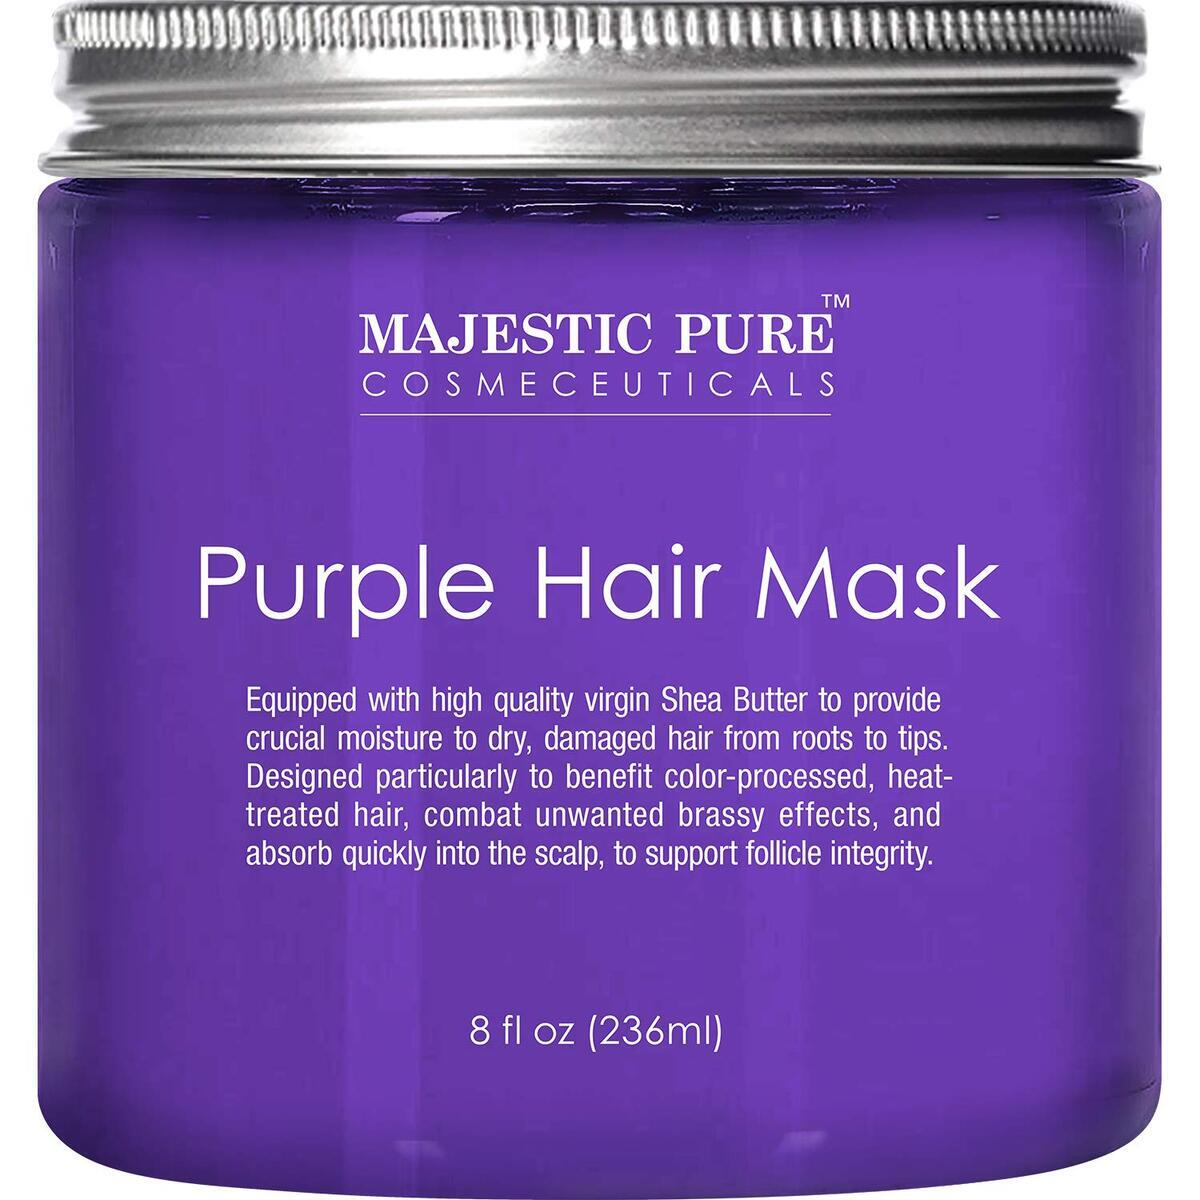 Purple Hair Mask for Blonde, Platinum, Silver Hair, Combat Brassiness, Sulfate Free - 8 fl oz